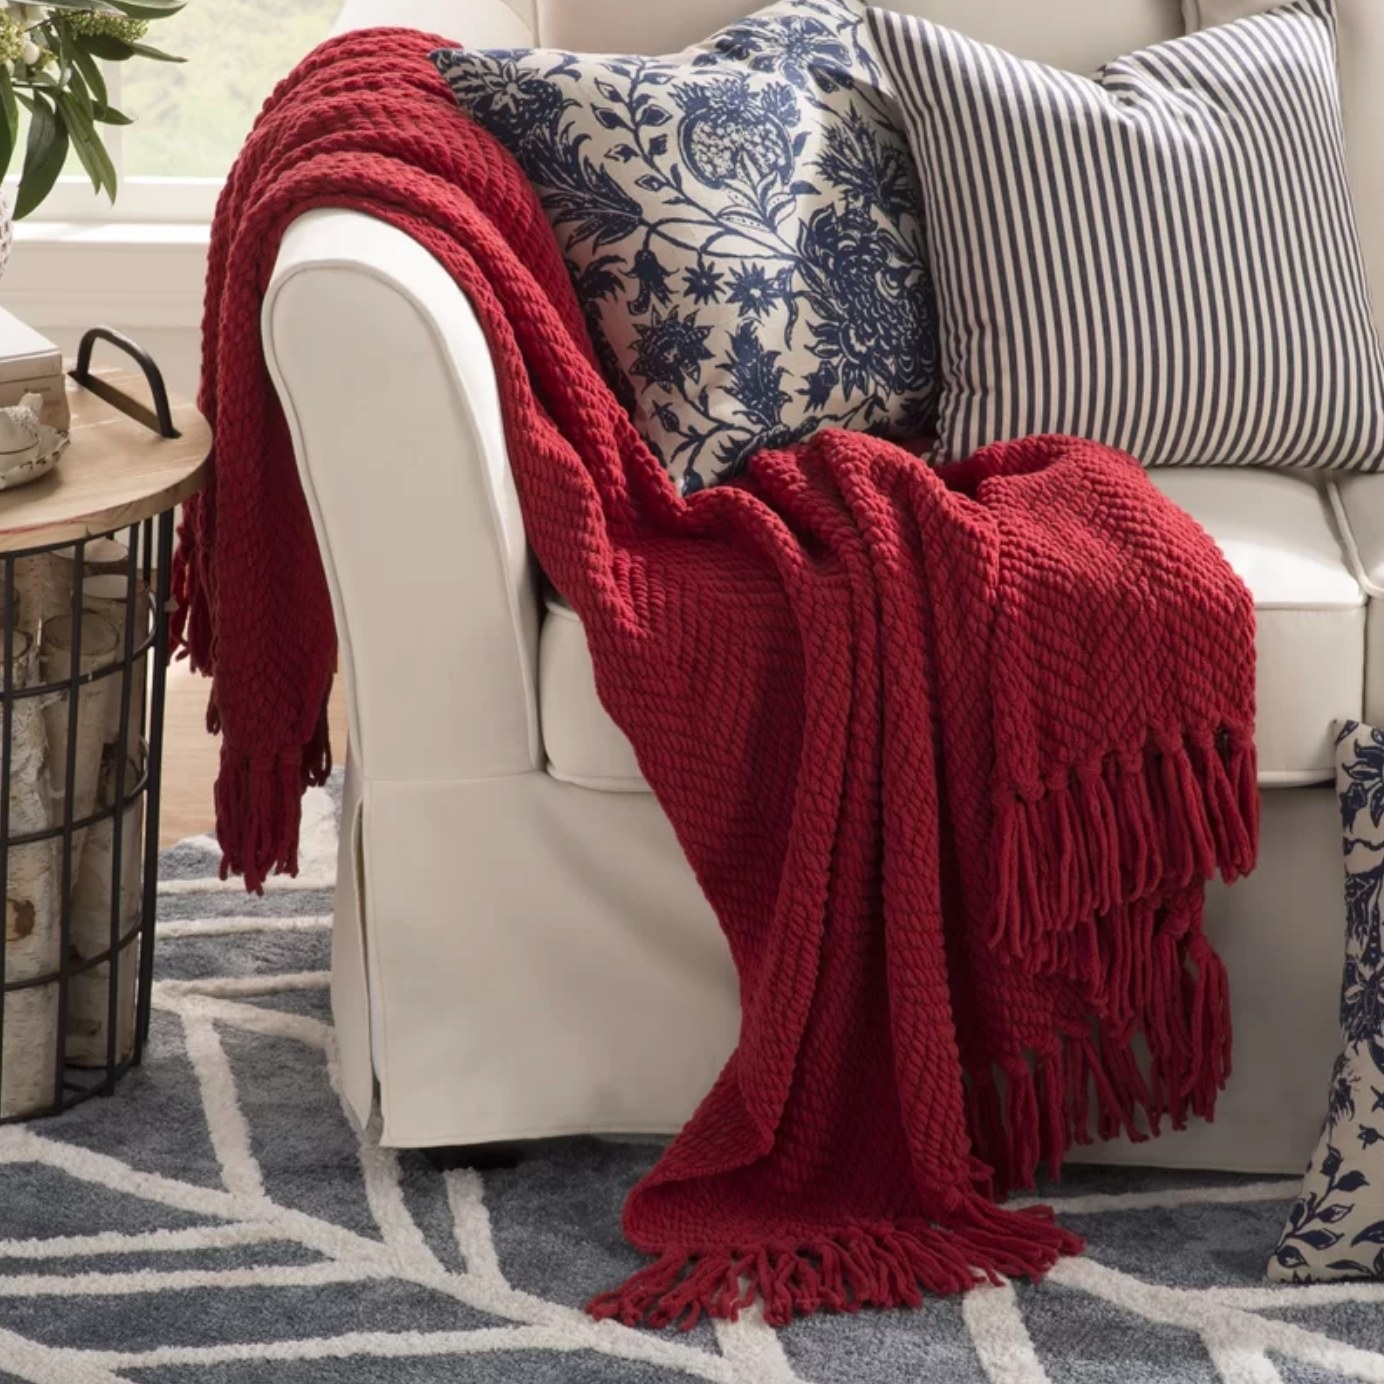 The knit blanket in chili pepper